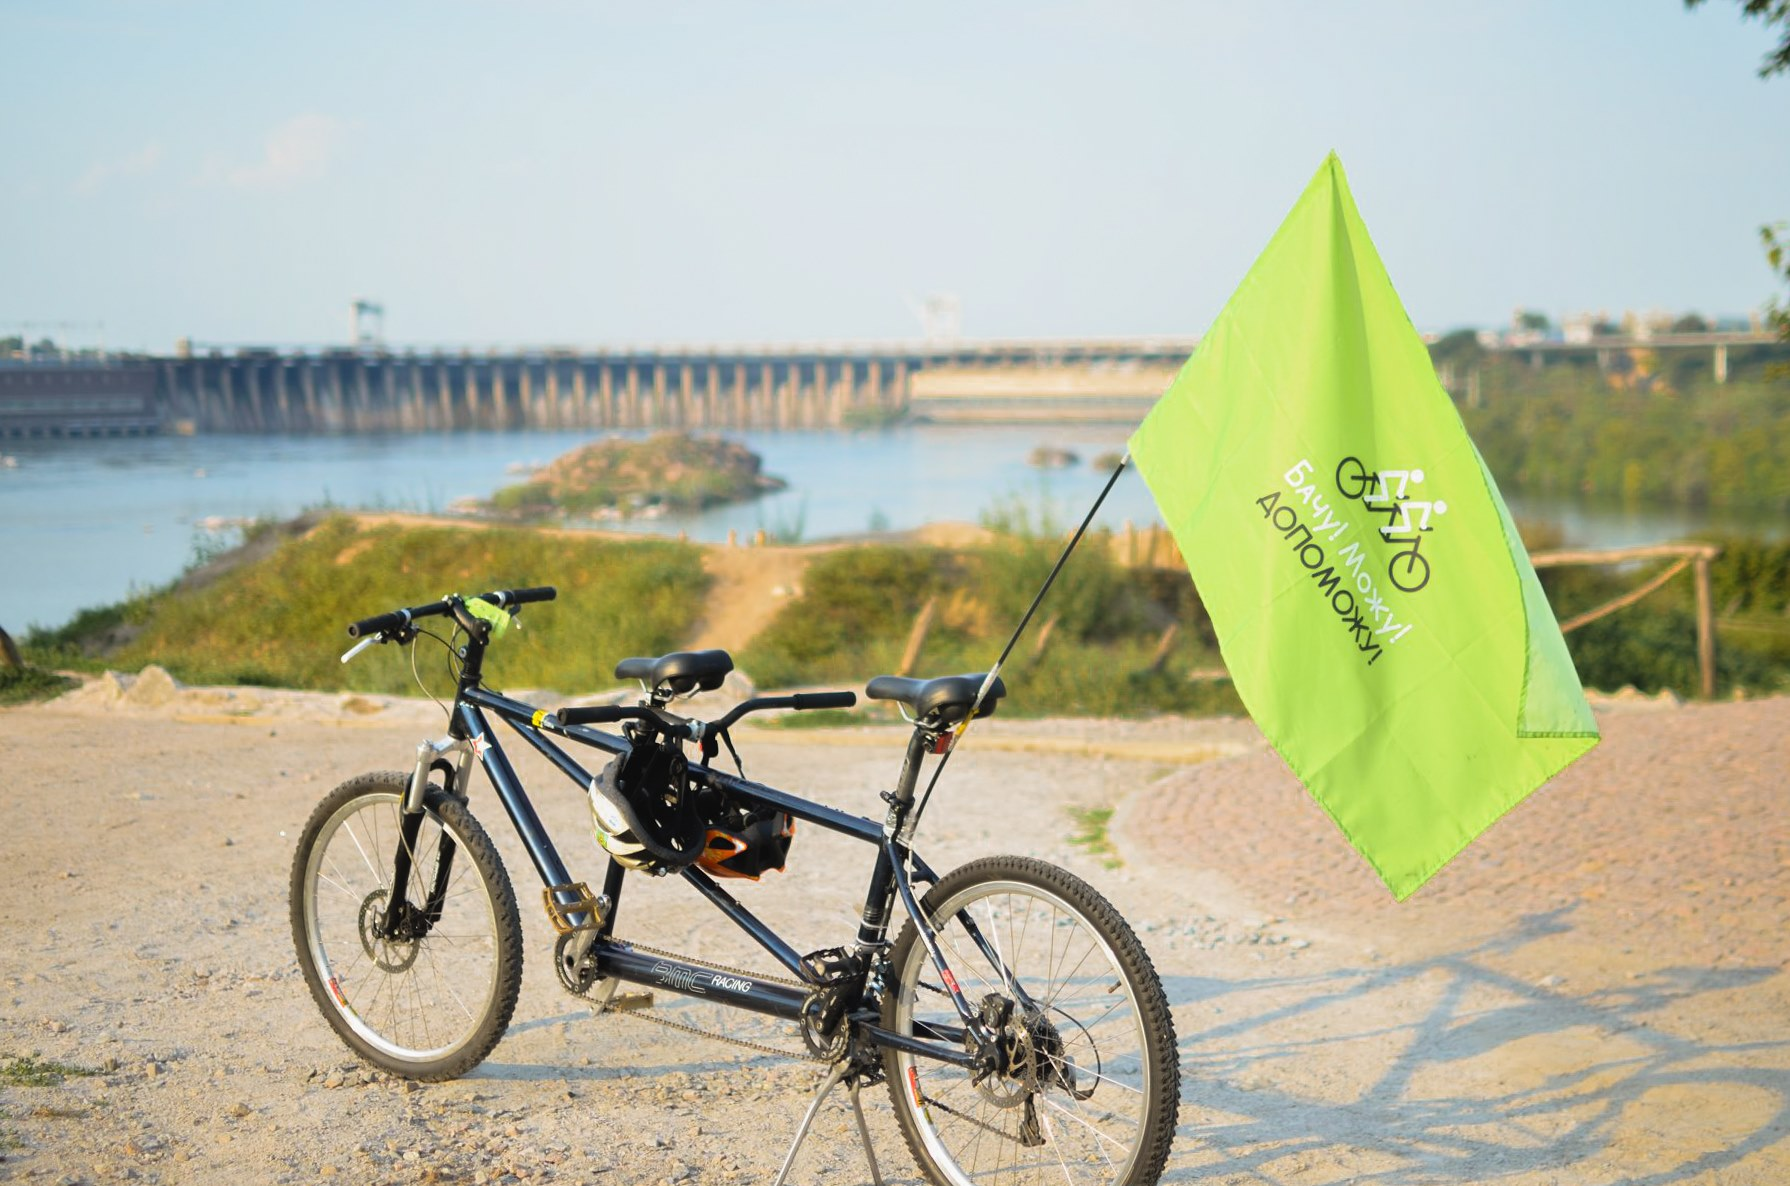 """A black tandem bicycle having a green banner with the writing """"I see! I can! I will!"""" in Ukrainian is standing on a path. In the background there is a river and a barrage."""